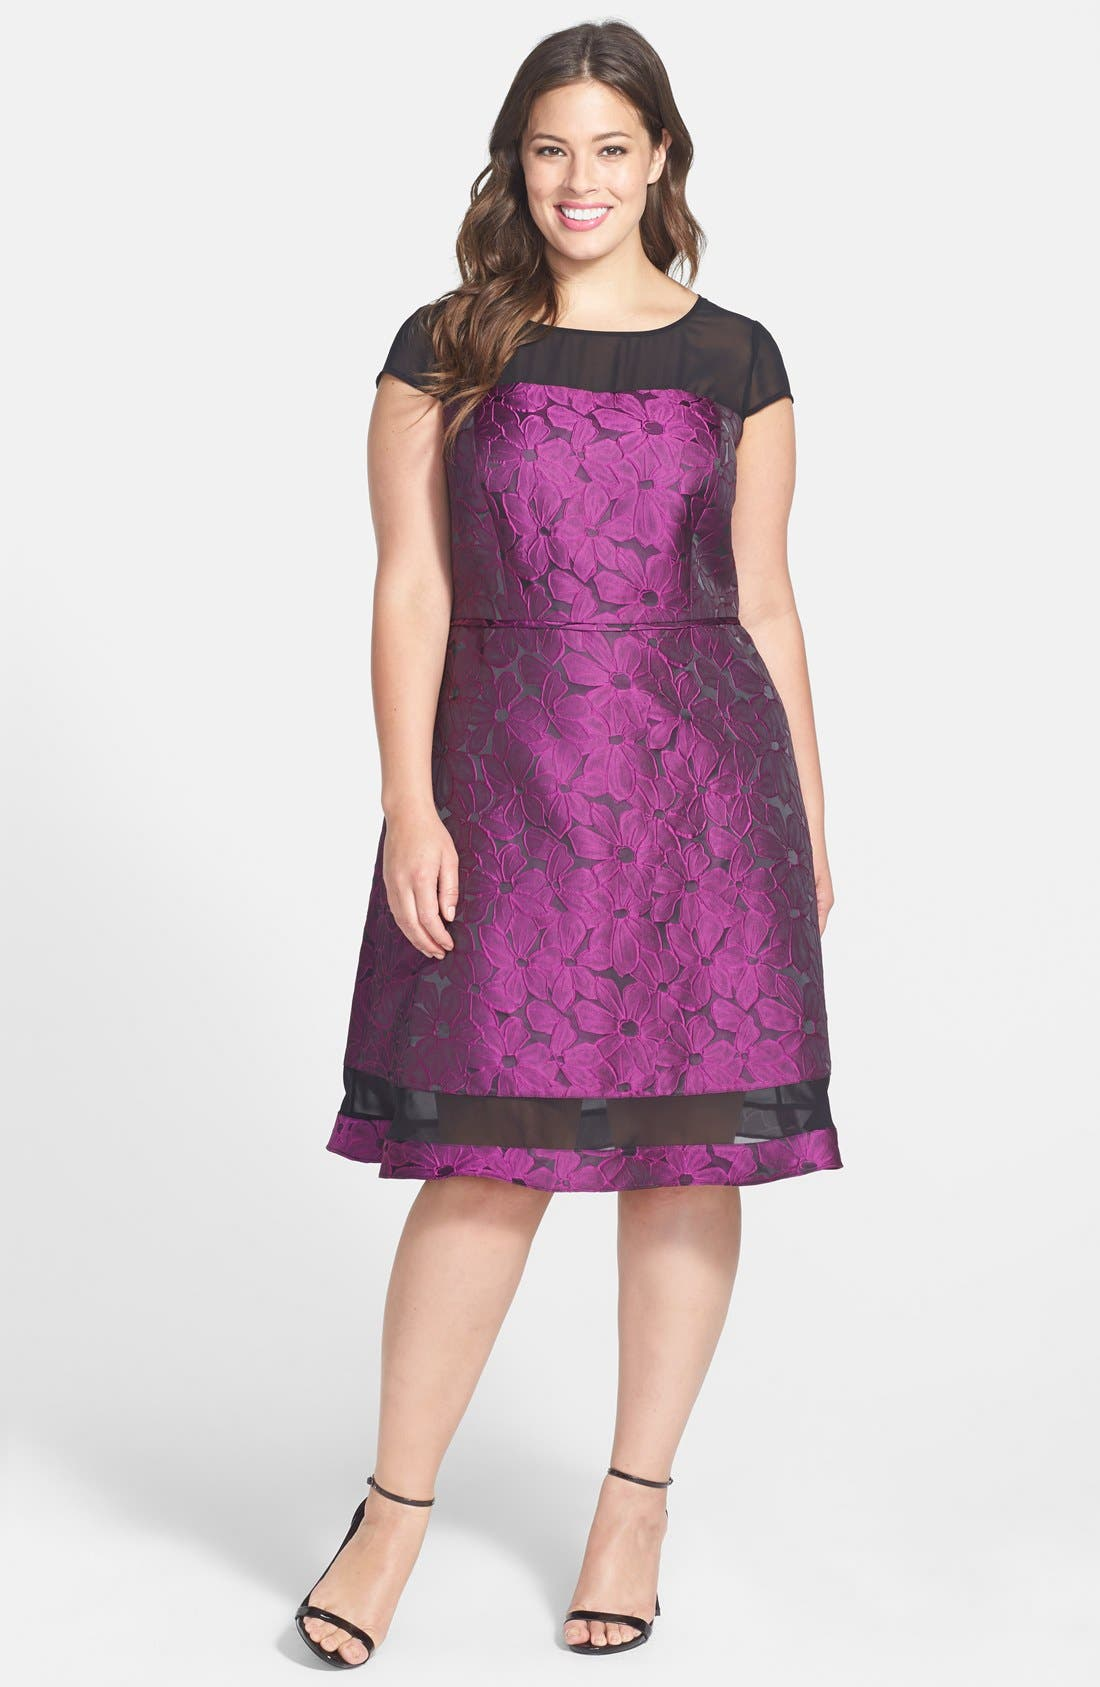 Main Image - Adrianna Papell Chiffon Inset Jacquard Fit & Flare Dress (Plus Size)